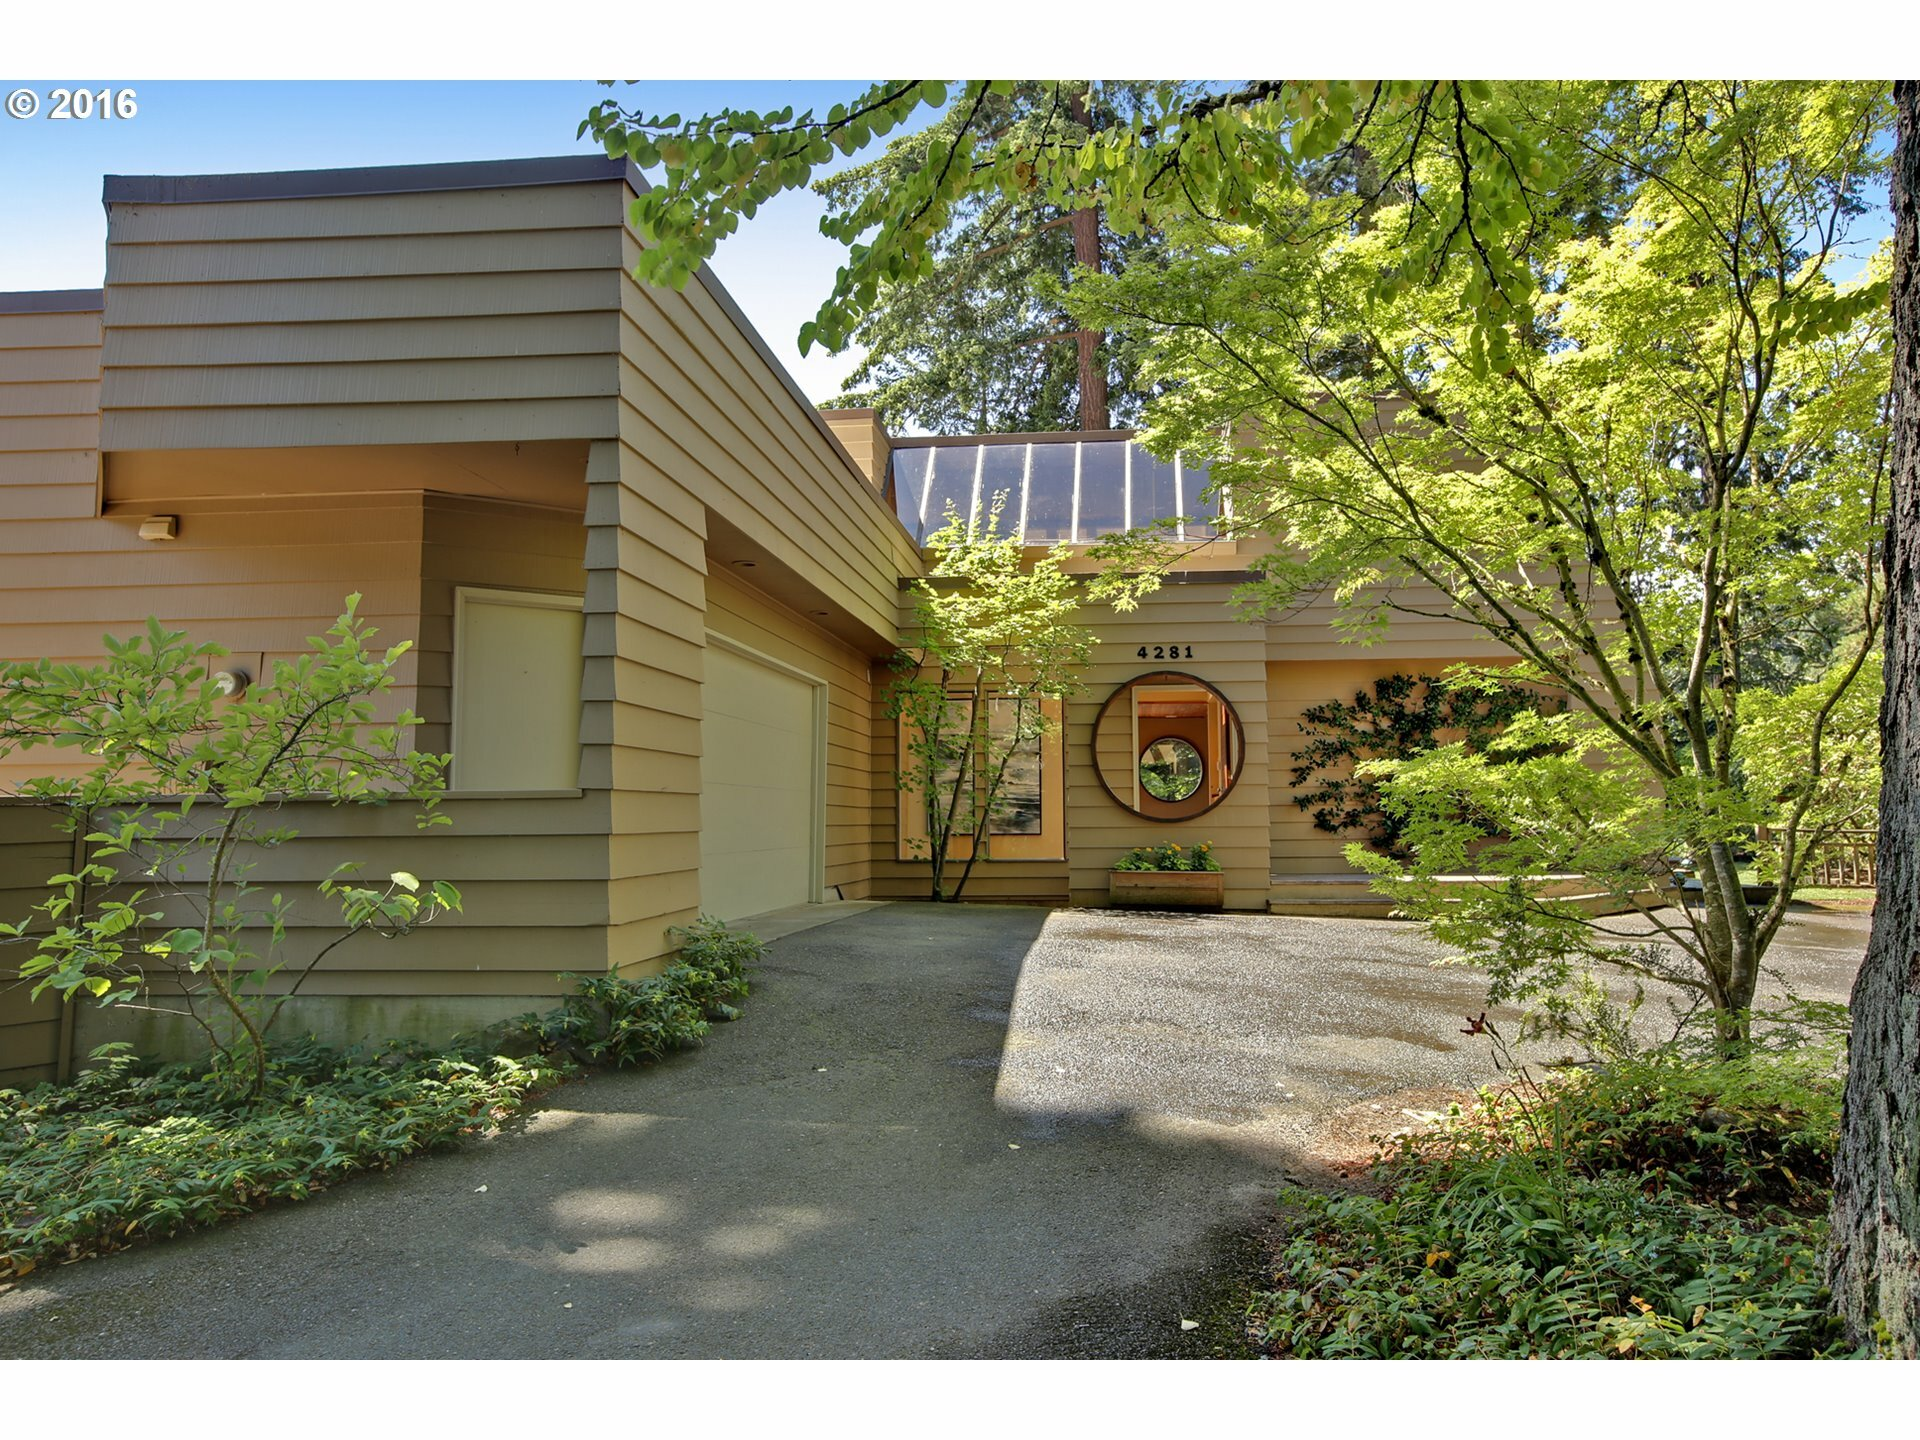 4281 Se Manewal Ln, Milwaukie, OR - USA (photo 1)